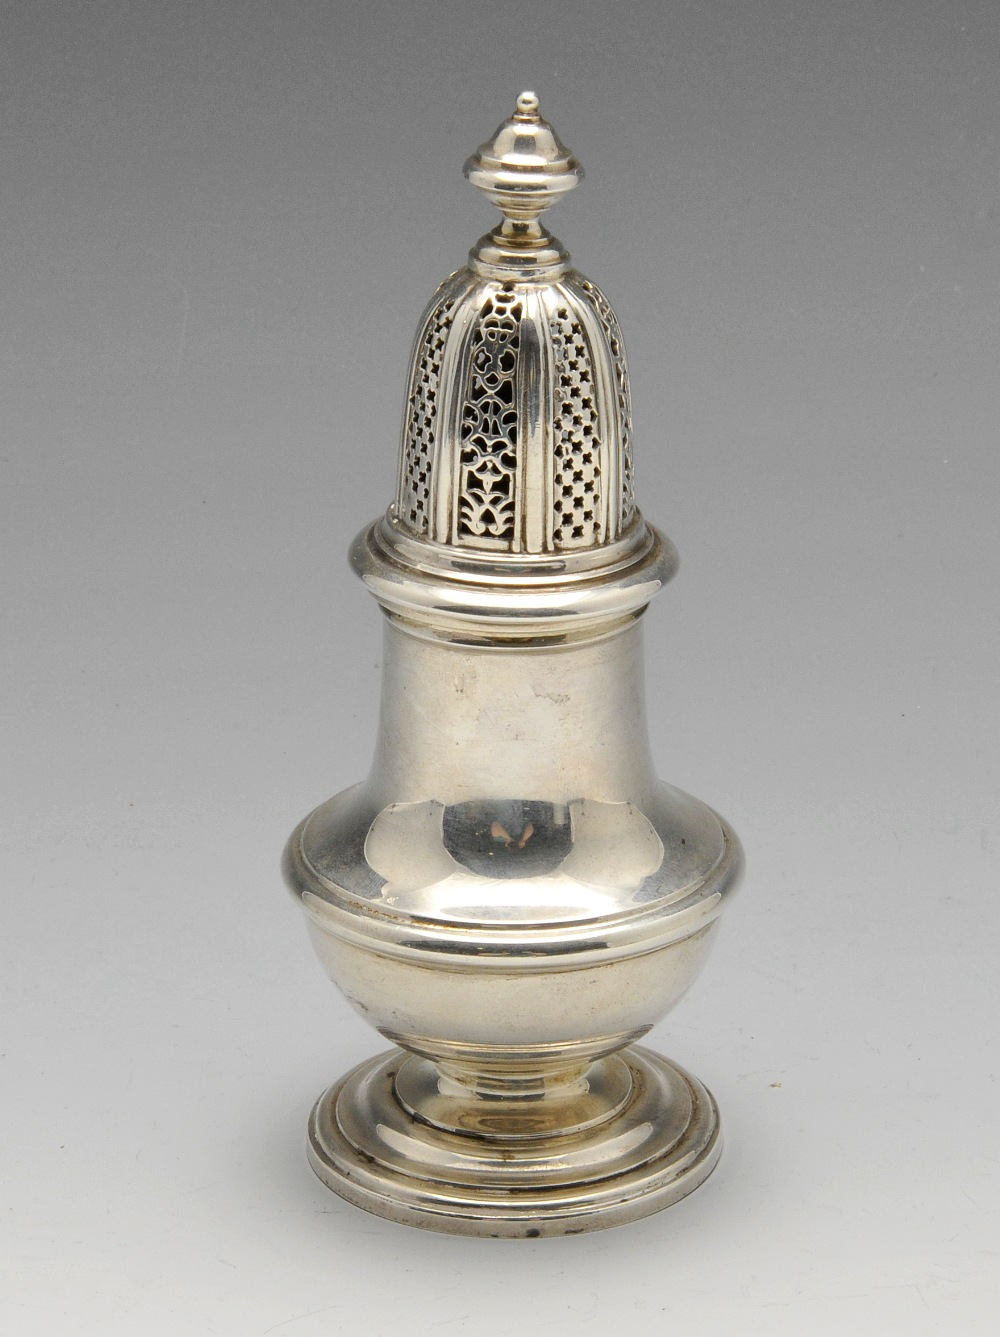 Lot 247 - A modern silver caster in Georgian style, the vase shaped body with embossed girdle, raised on a